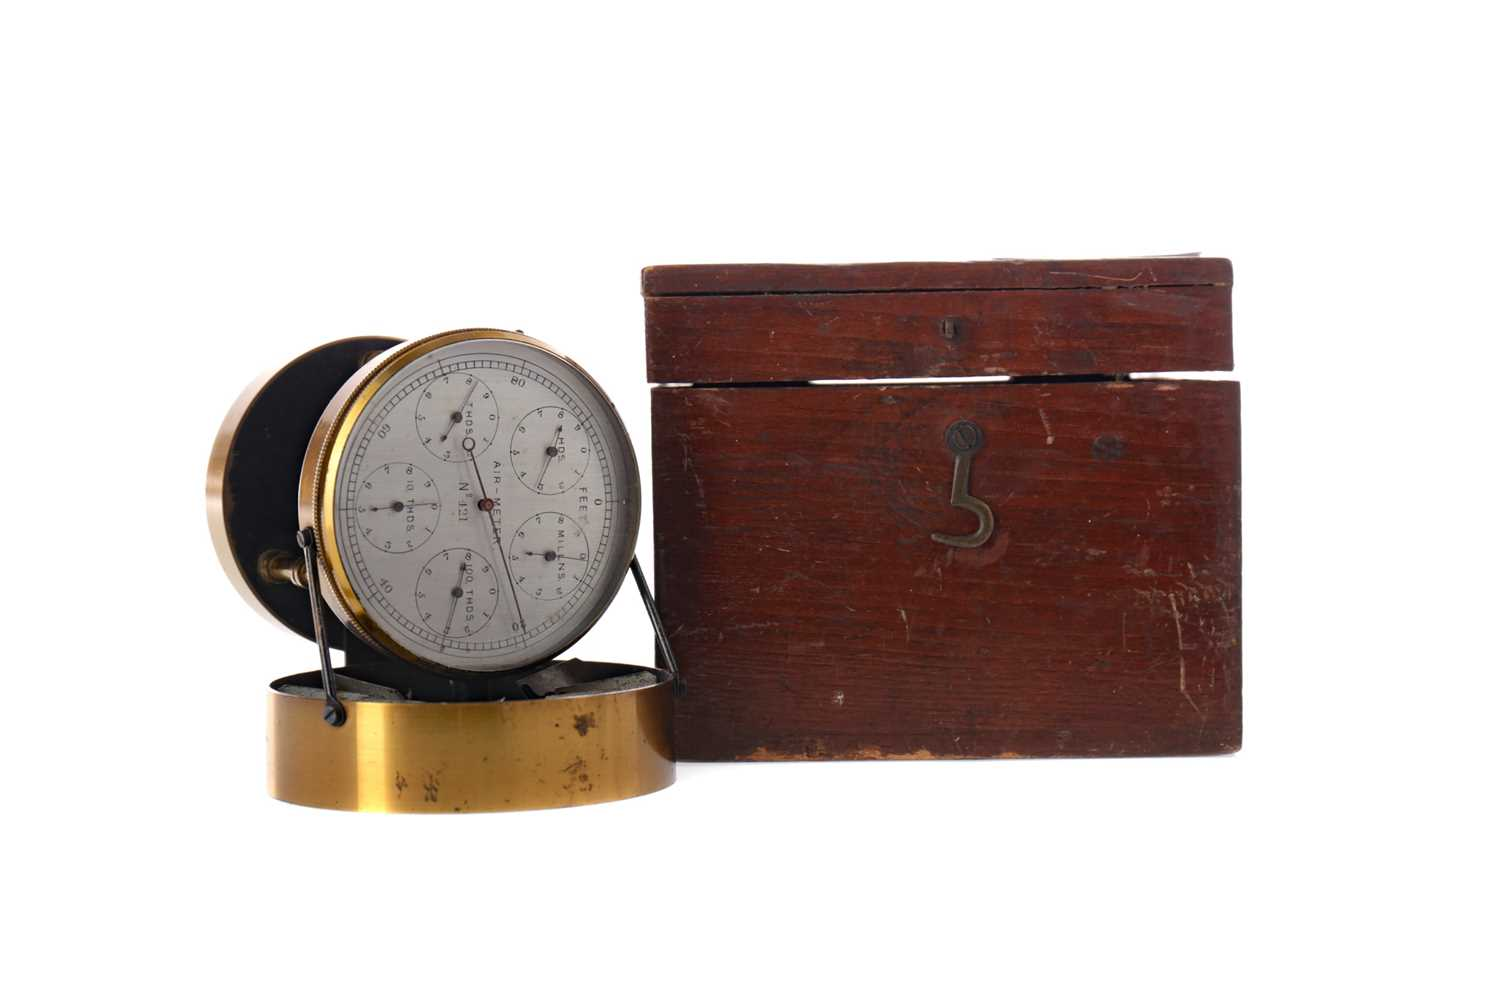 Lot 1711 - AN EARLY 20TH CENTURY AIRMETER